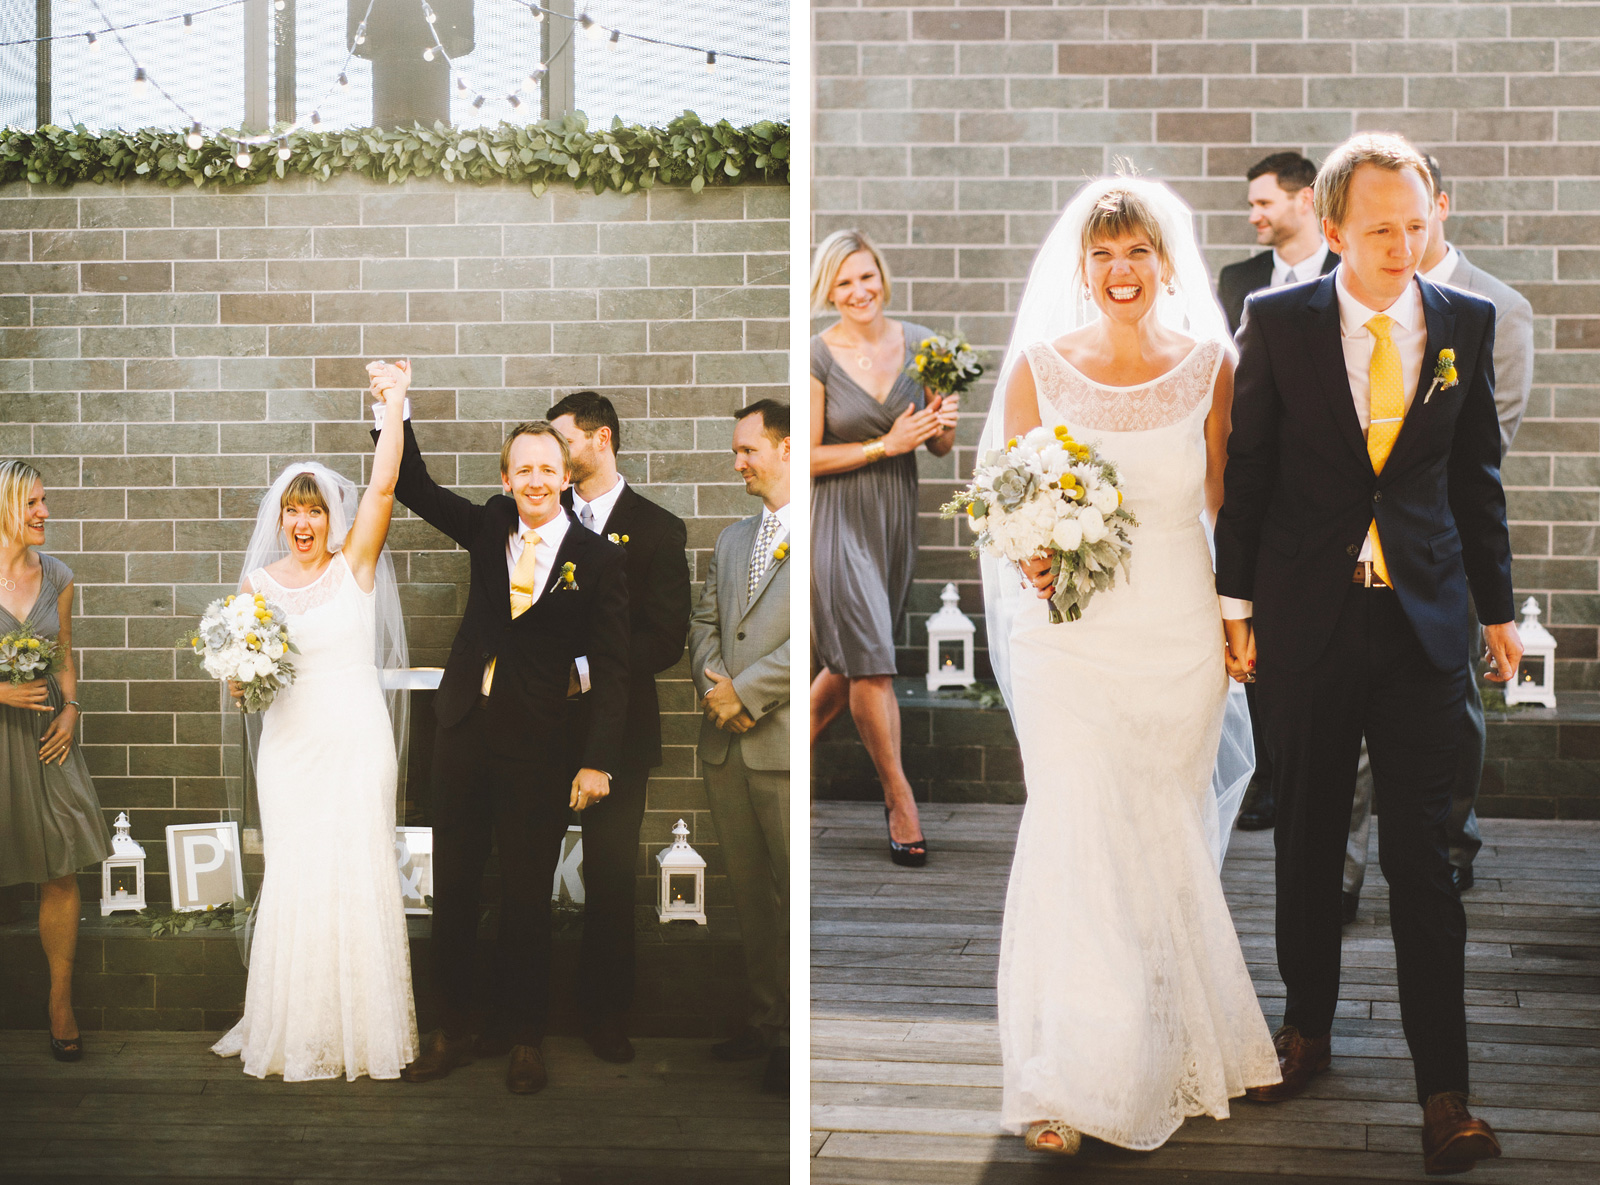 Bride and Groom walking down the aisle | Ecotrust Rooftop Wedding in Downtown PDX